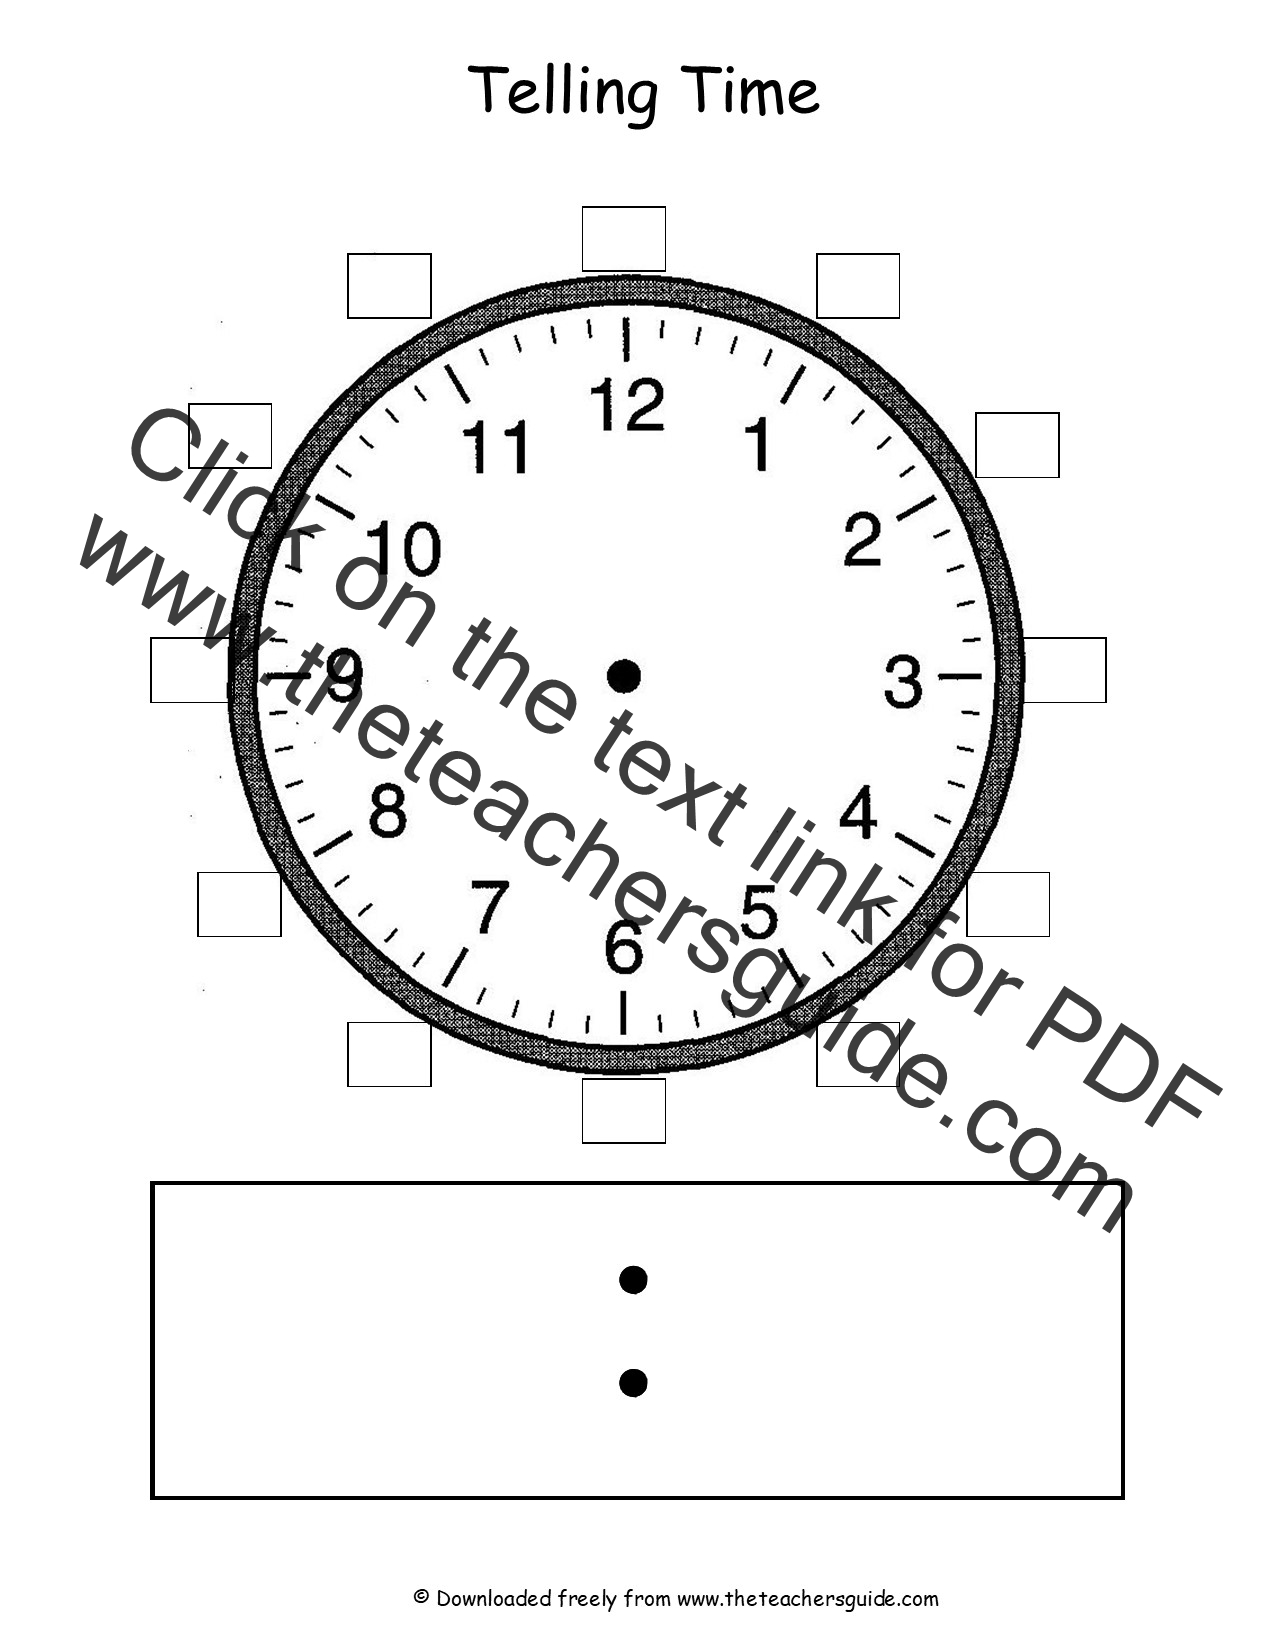 Worksheet Teaching Time Clock telling time worksheets from the teachers guide dry erase clock face